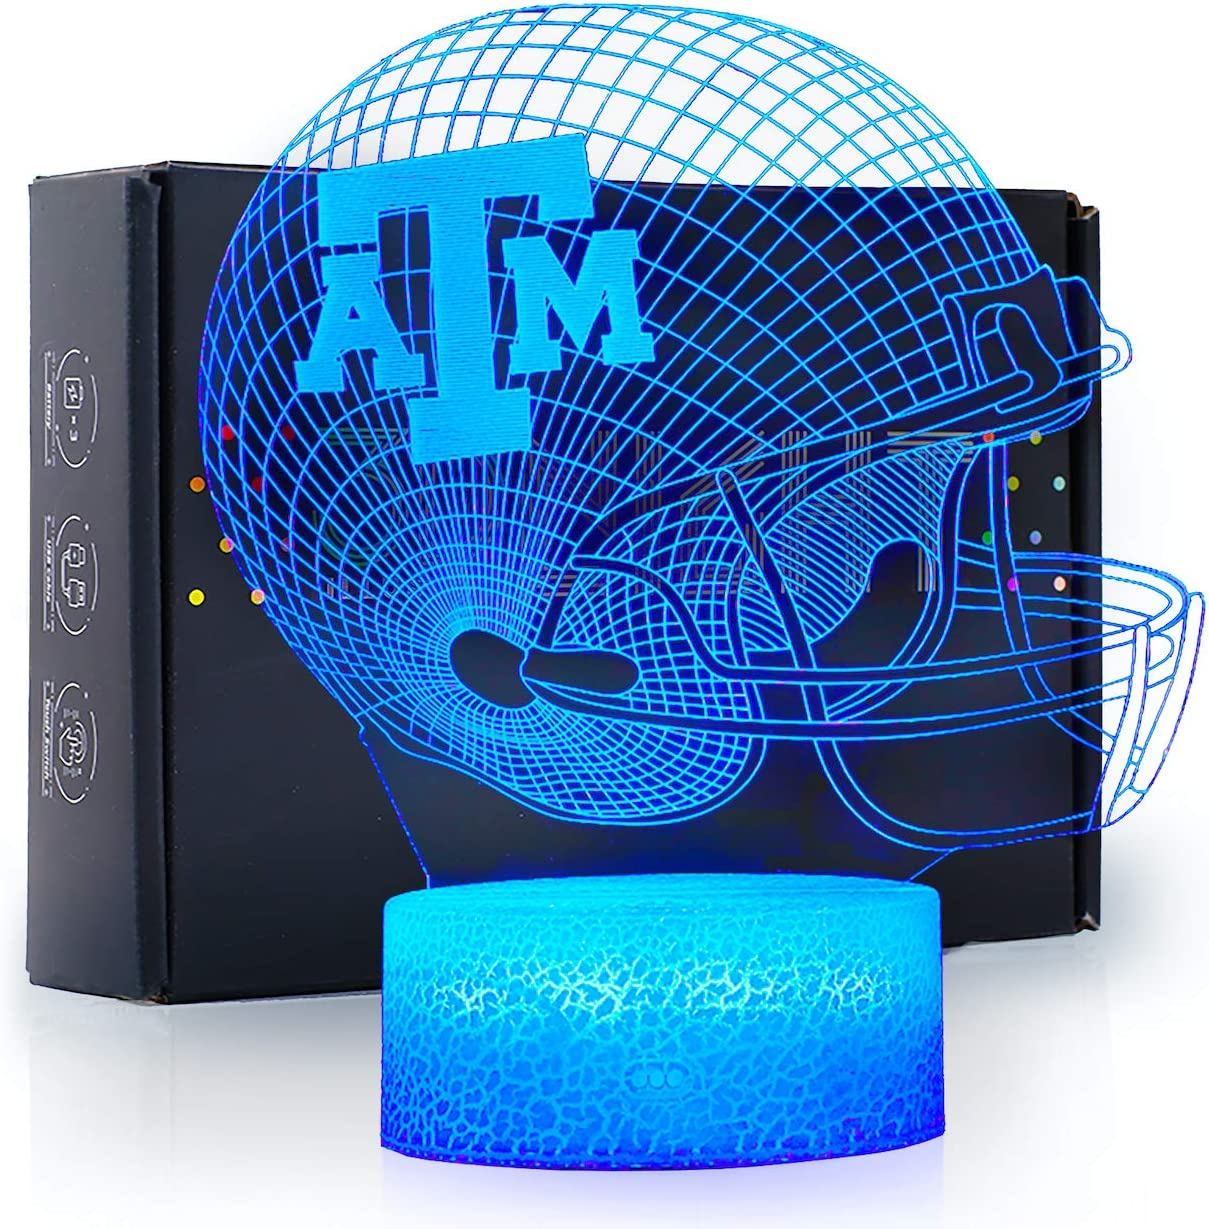 Ikavis 3D LED Night Light Football Helmet Texas A&M Aggies Flat Acrylic Illusion Lighting Lamp with 7 Colors and Touch Sensor, Sports Fan Nightlight Gift for Kids, Boys, Girls, Men or Women